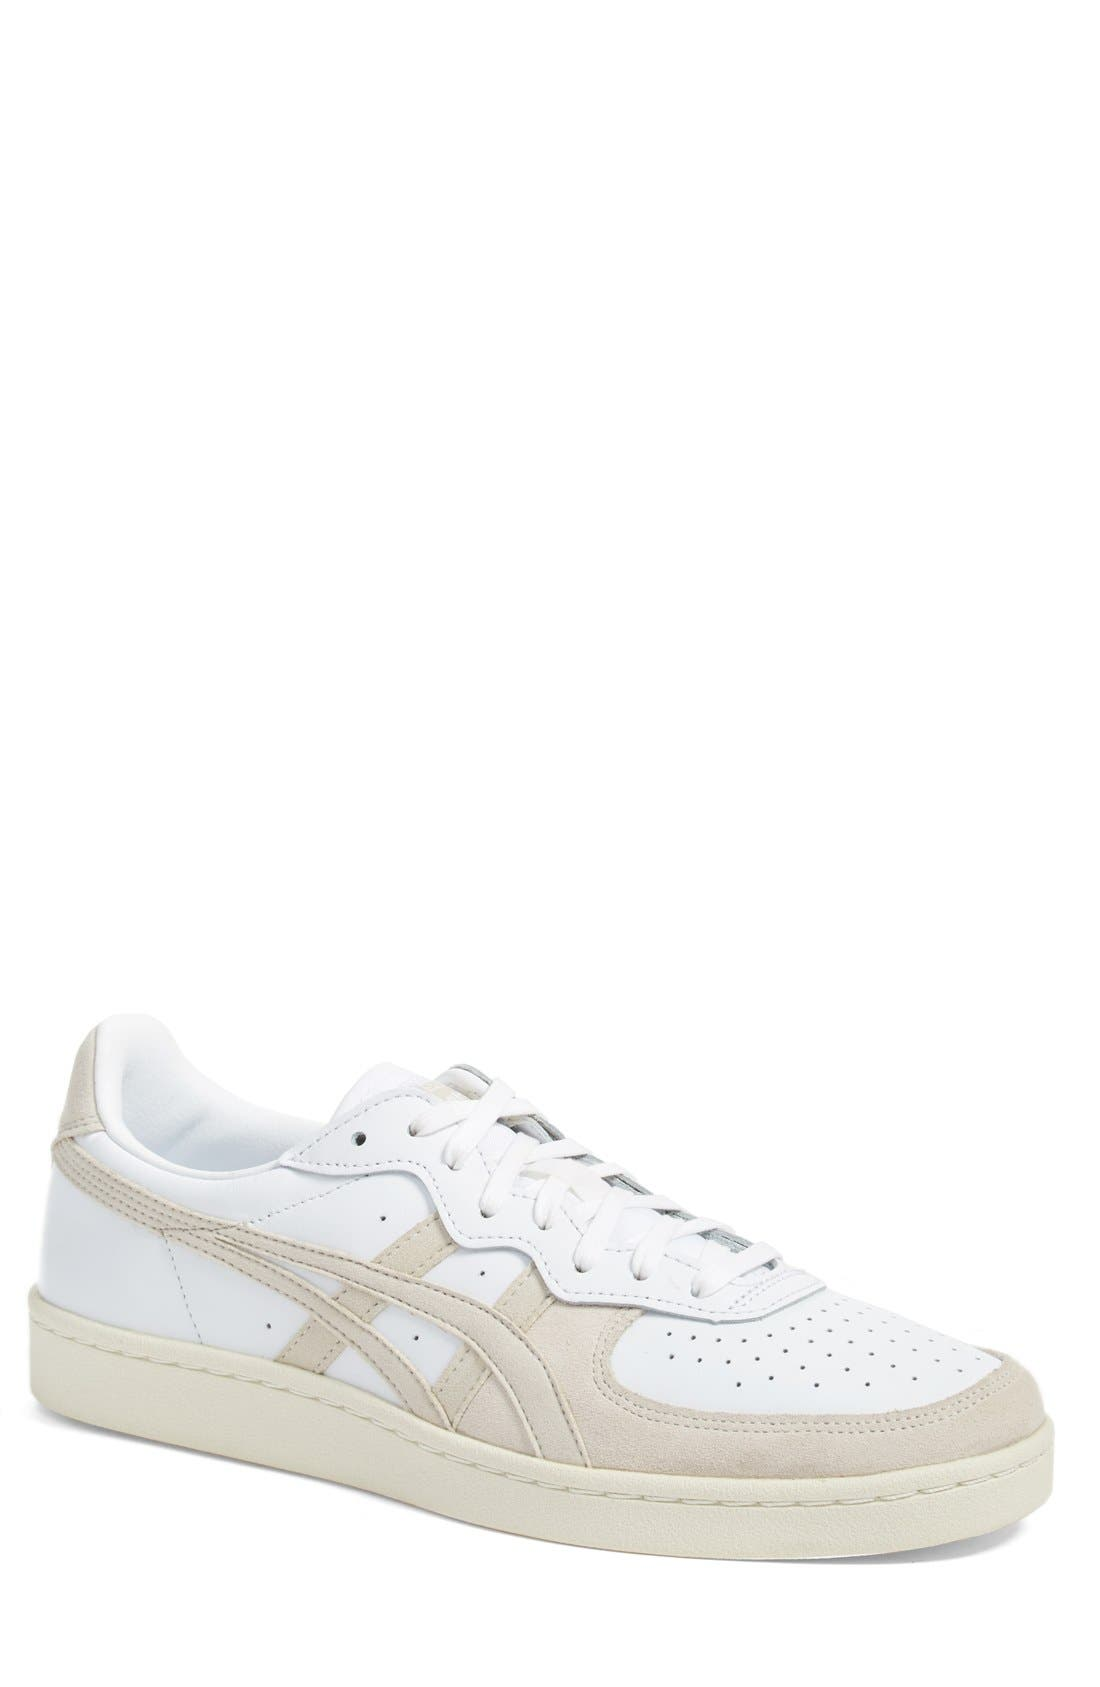 Onitsuka Tiger 'Game Set Match' Sneaker, Main, color, 100